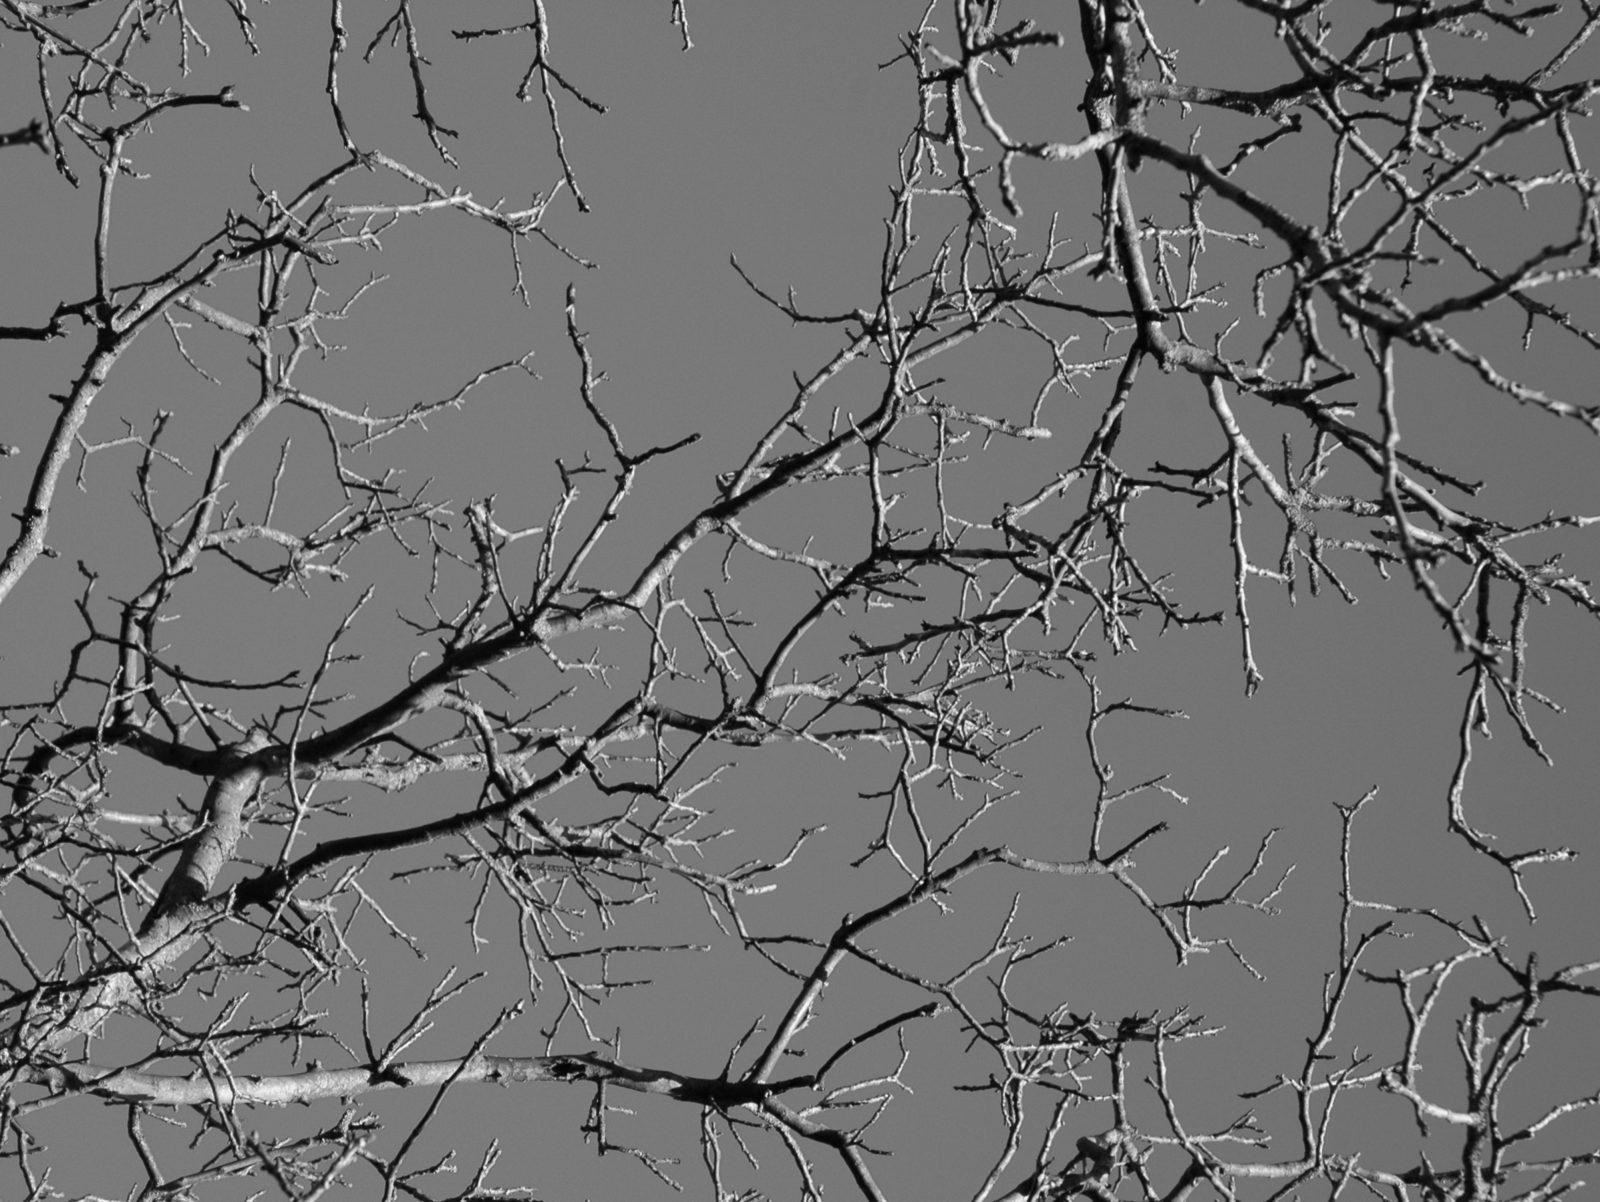 black and white overhanging tree branches